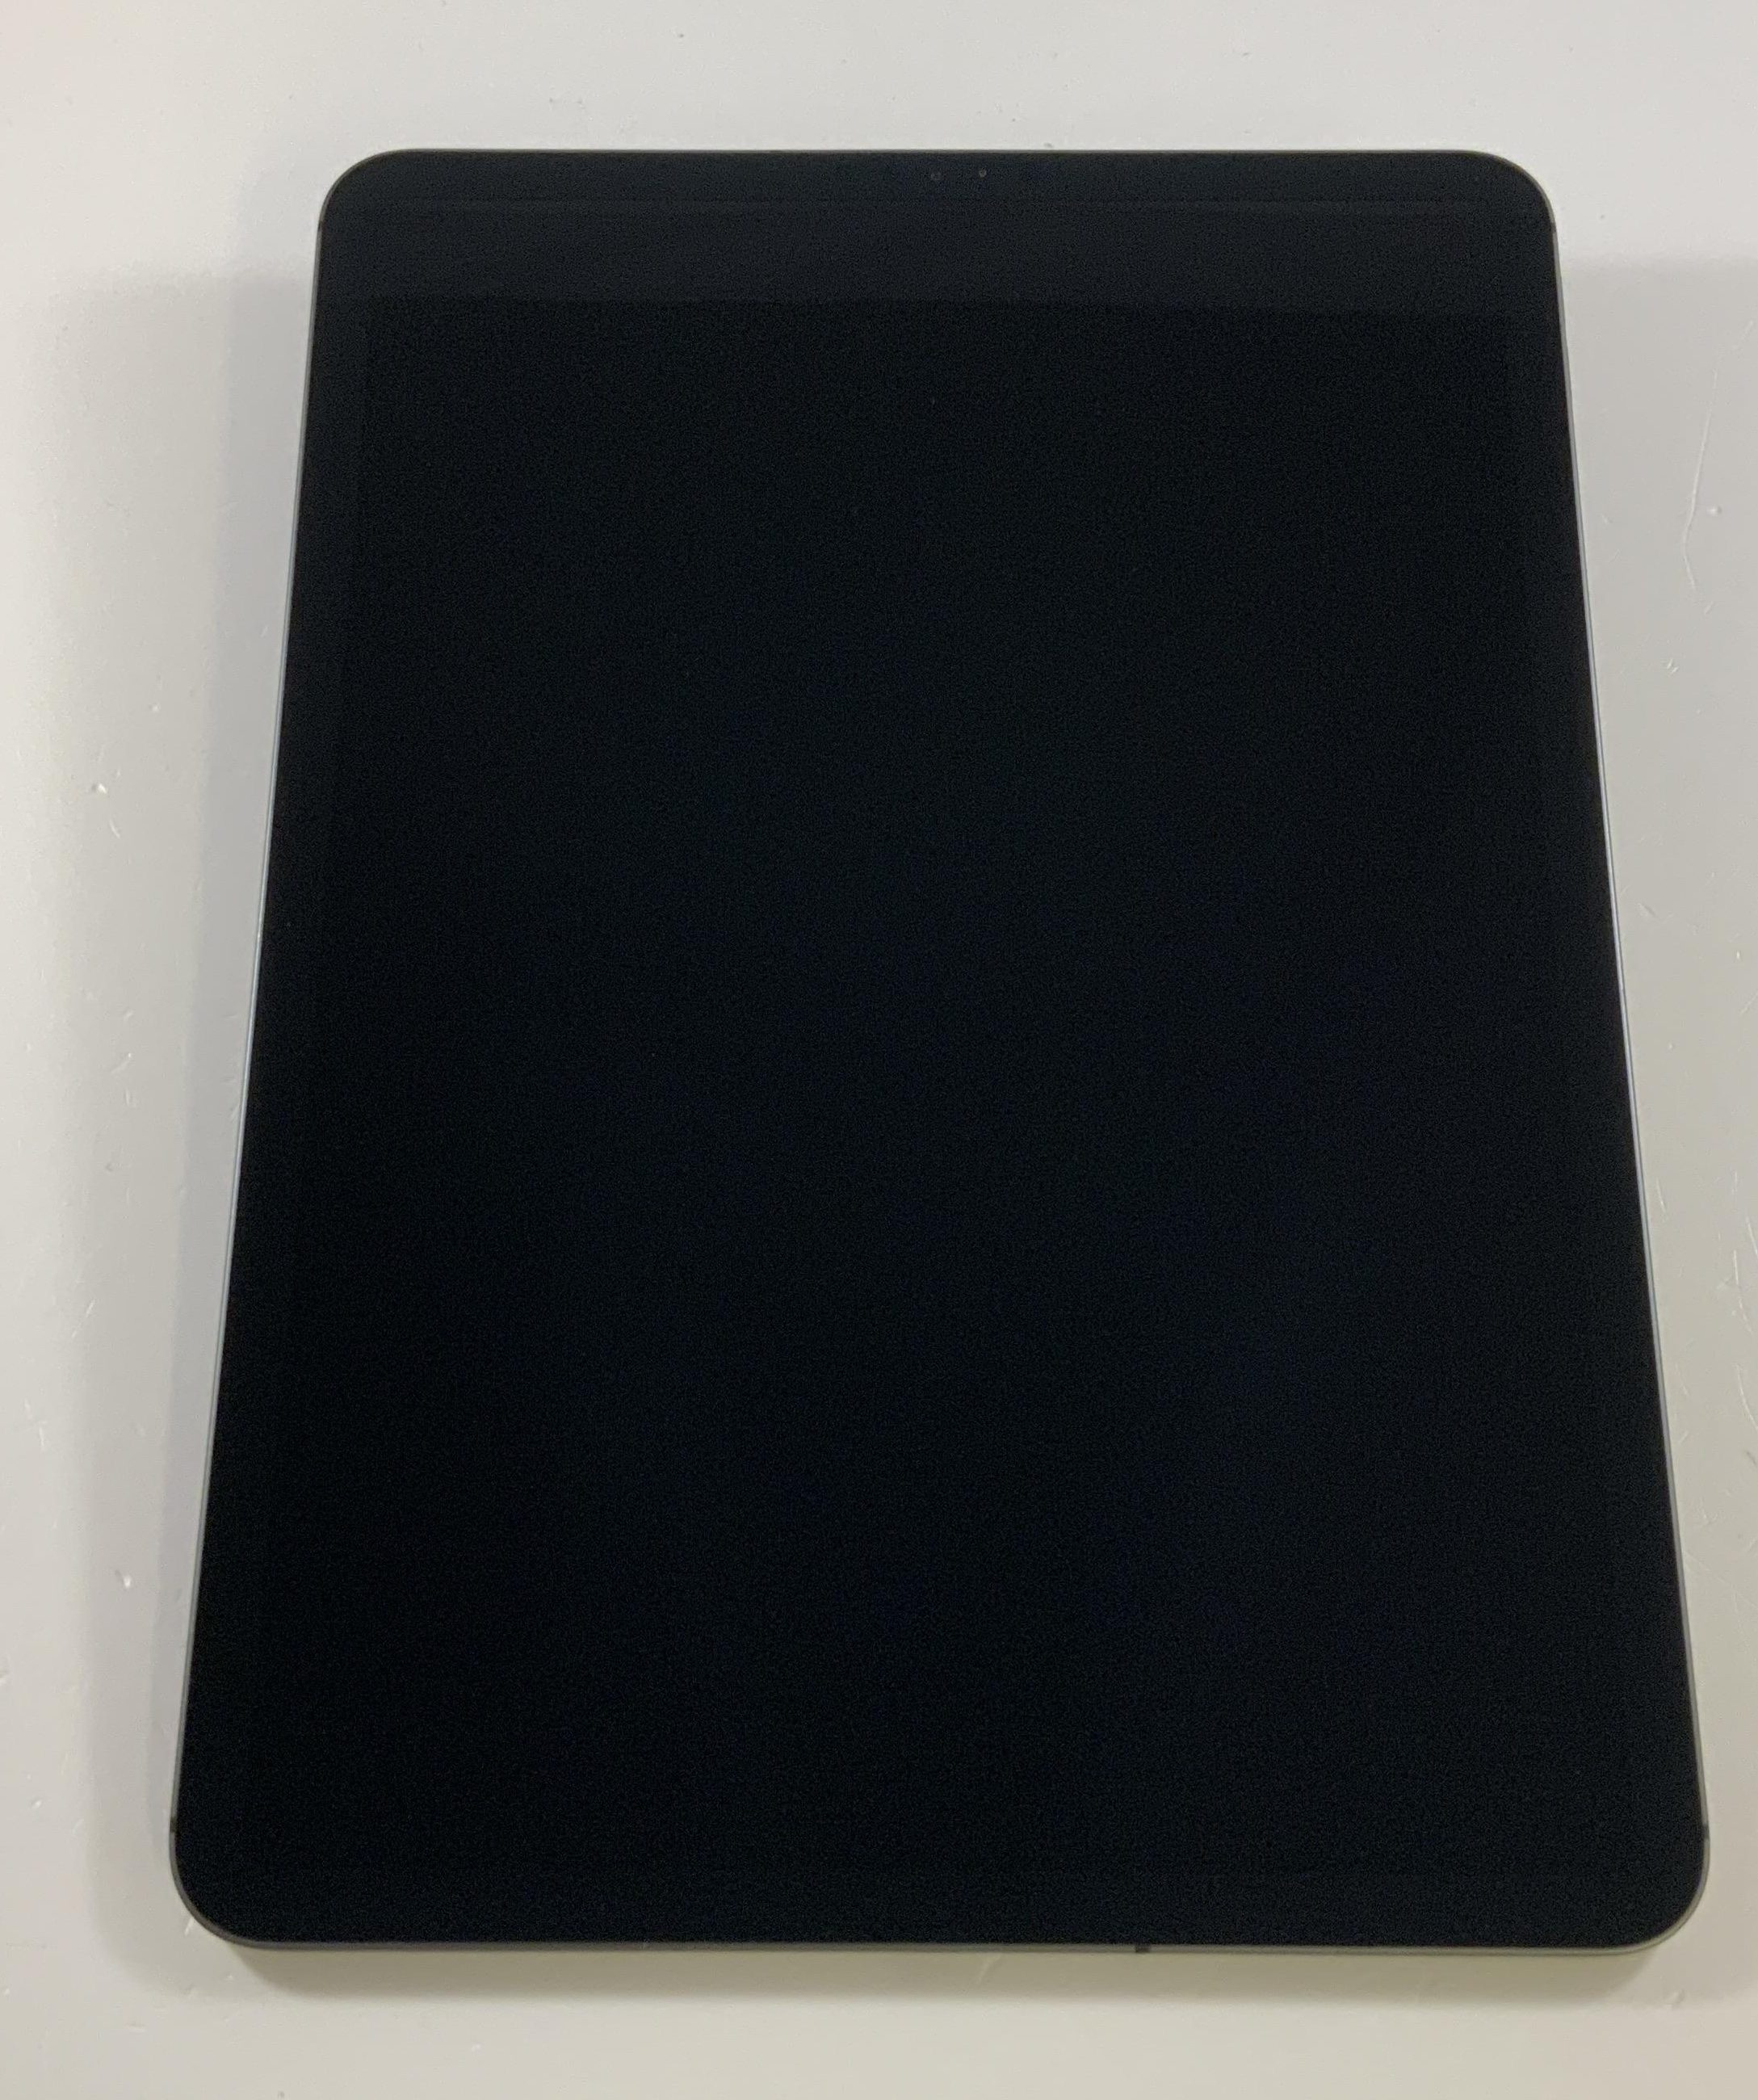 "iPad Pro 11"" Wi-Fi + Cellular 64GB, 64GB, Space Gray, Kuva 1"